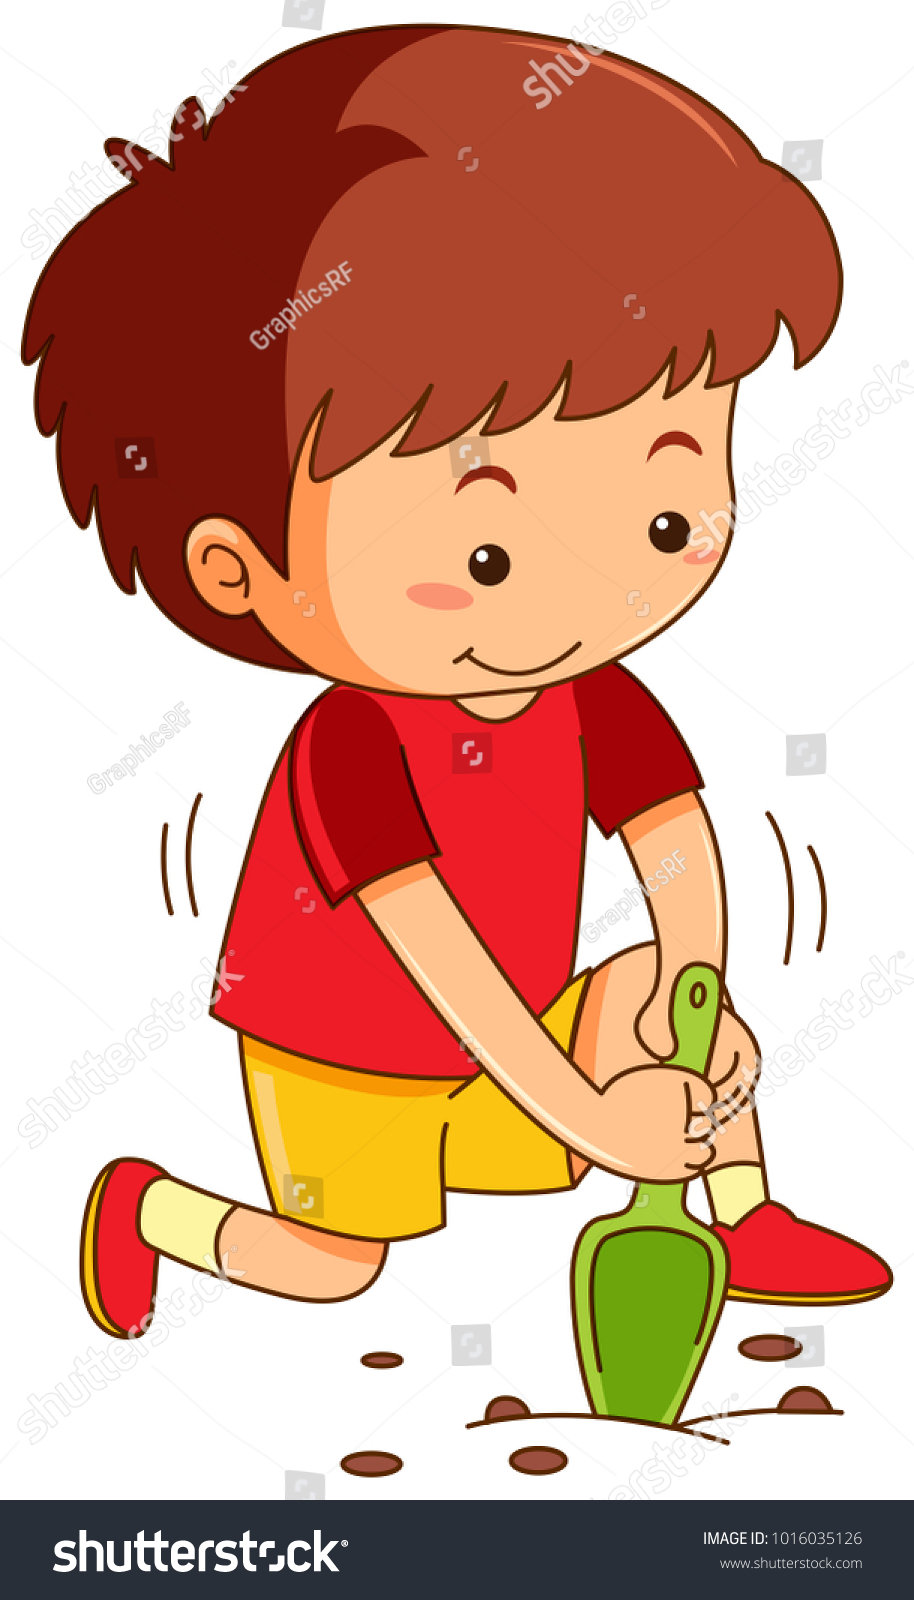 hight resolution of boy with garden spoon digging hole illustration